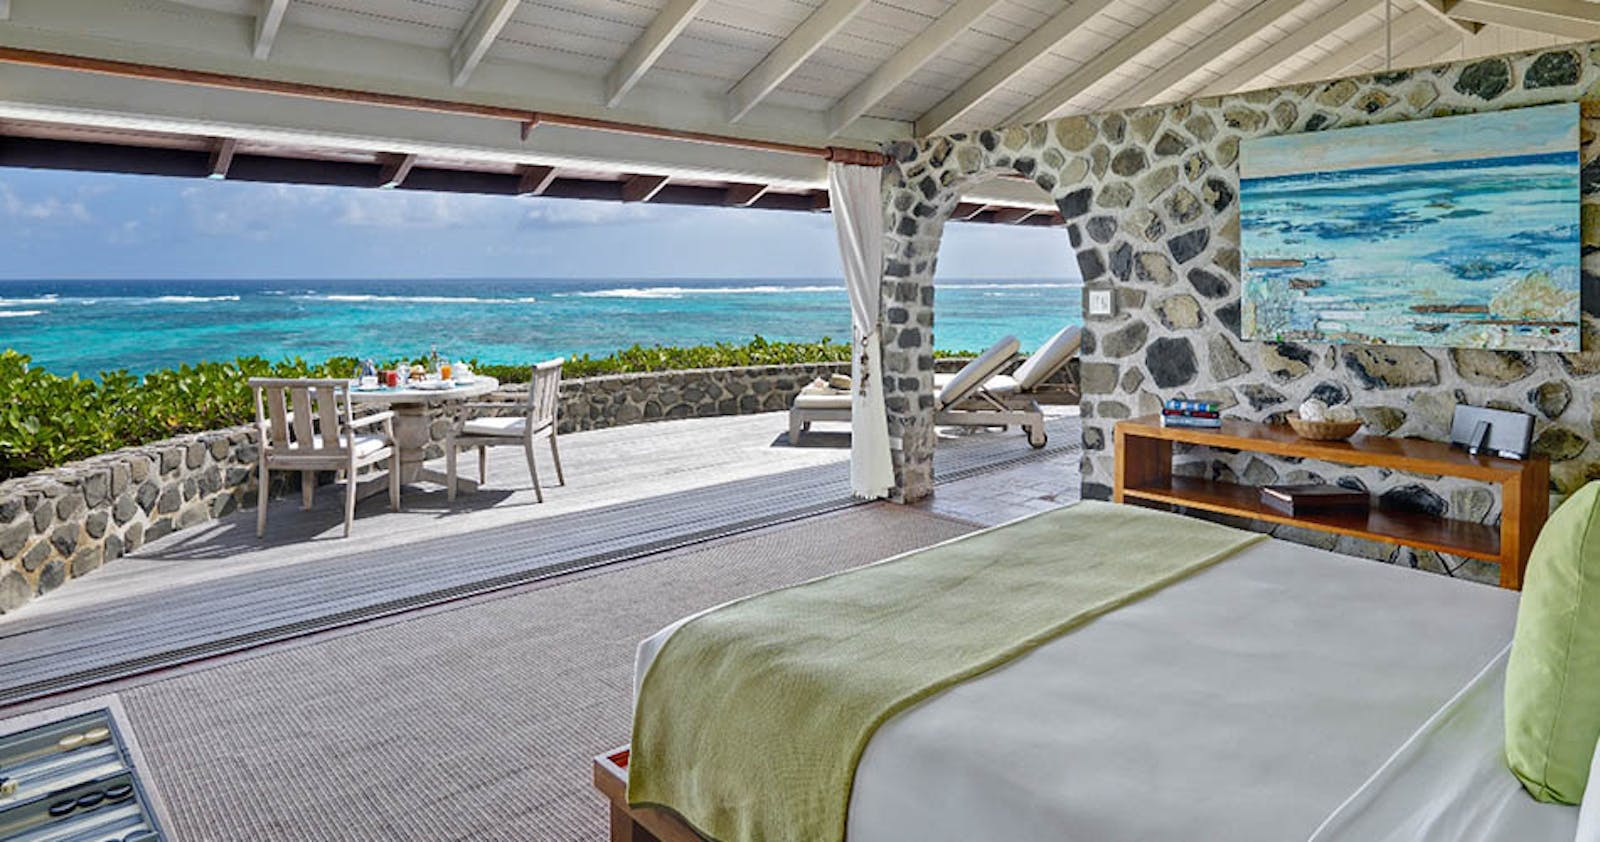 One bedroom cottage at Petit St. Vincent